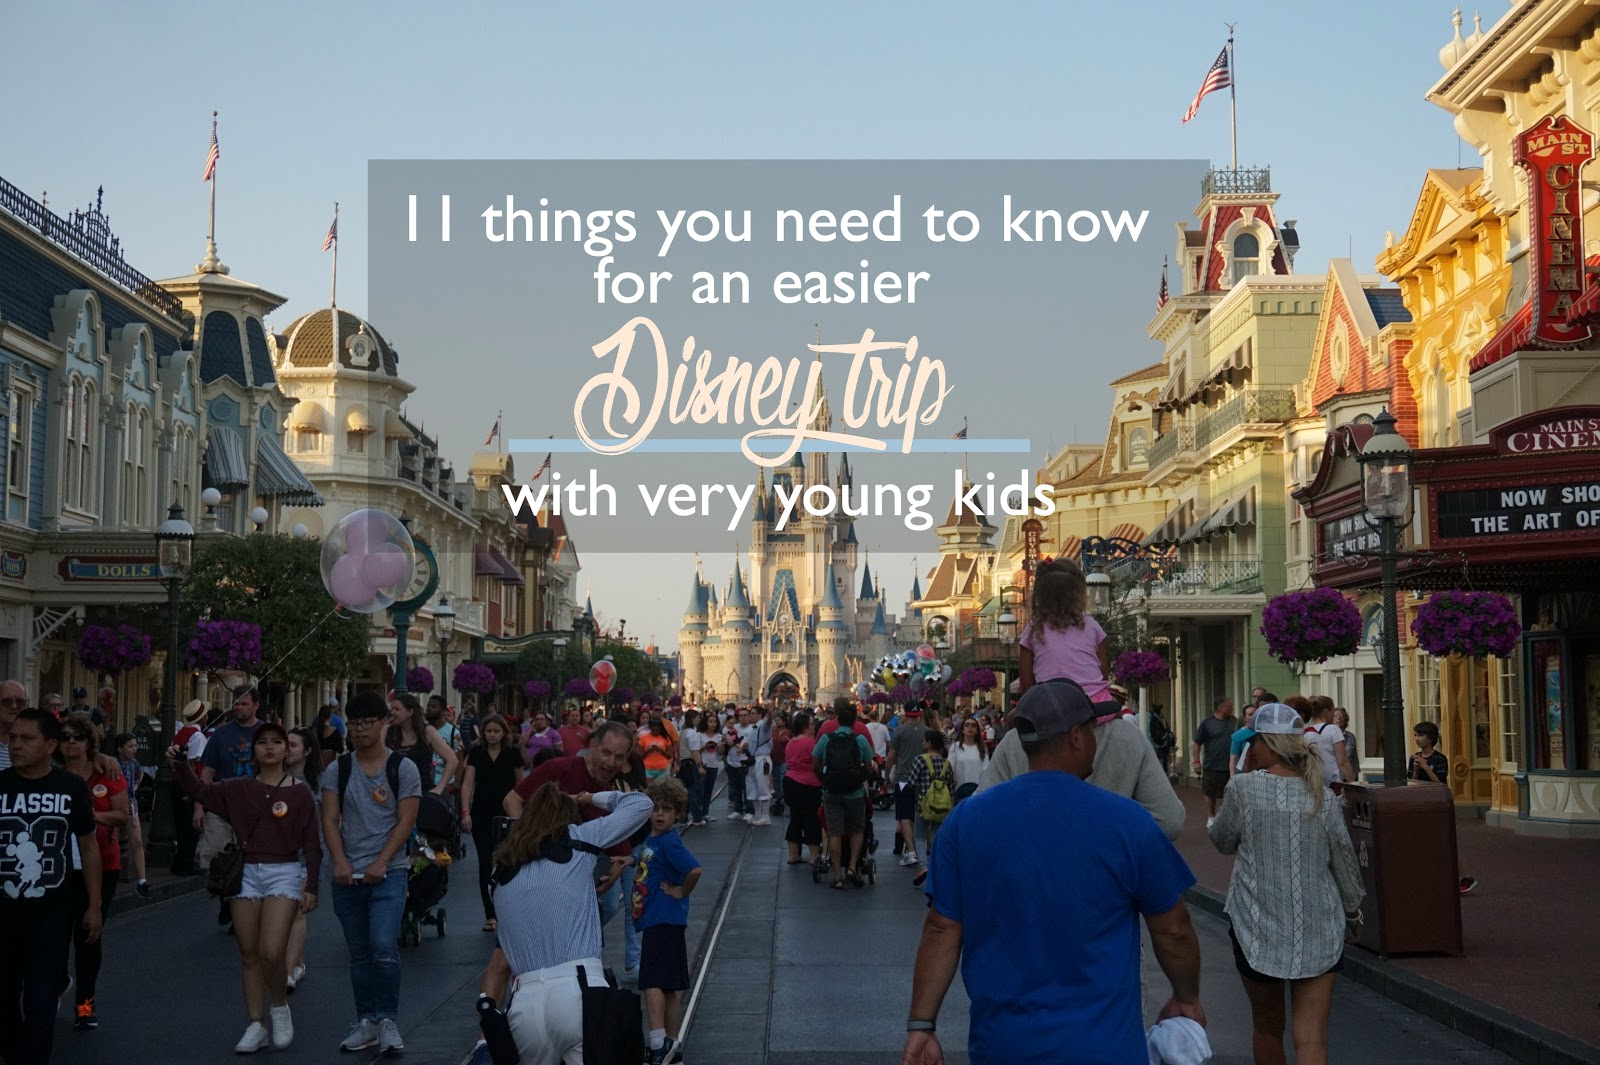 11 Things You Need to Know for an Easier Disney Trip with Very Young Kids